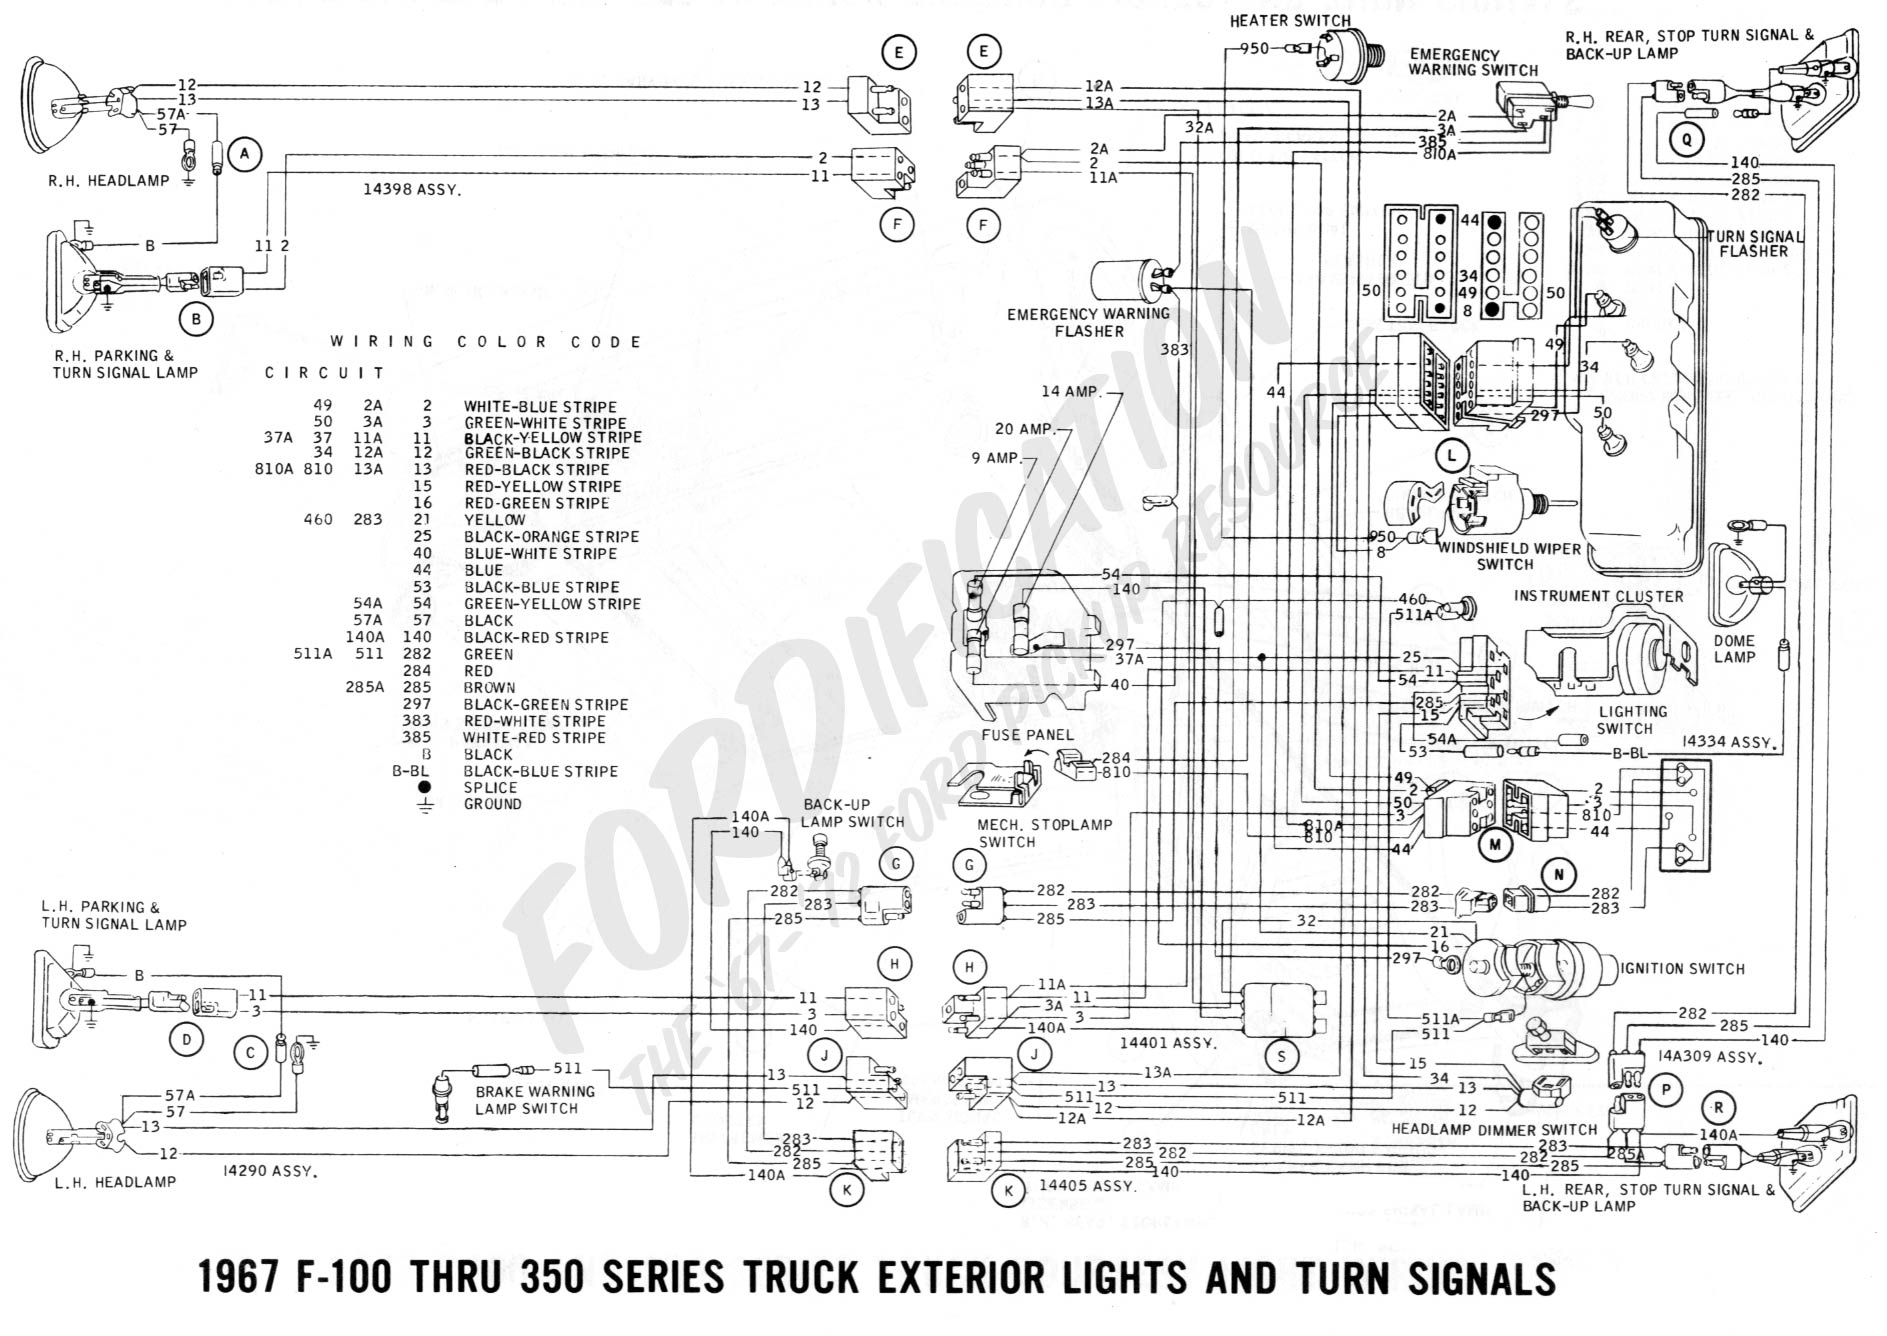 air conditioning wiring diagrams on 67 gto ignition wiring diagram